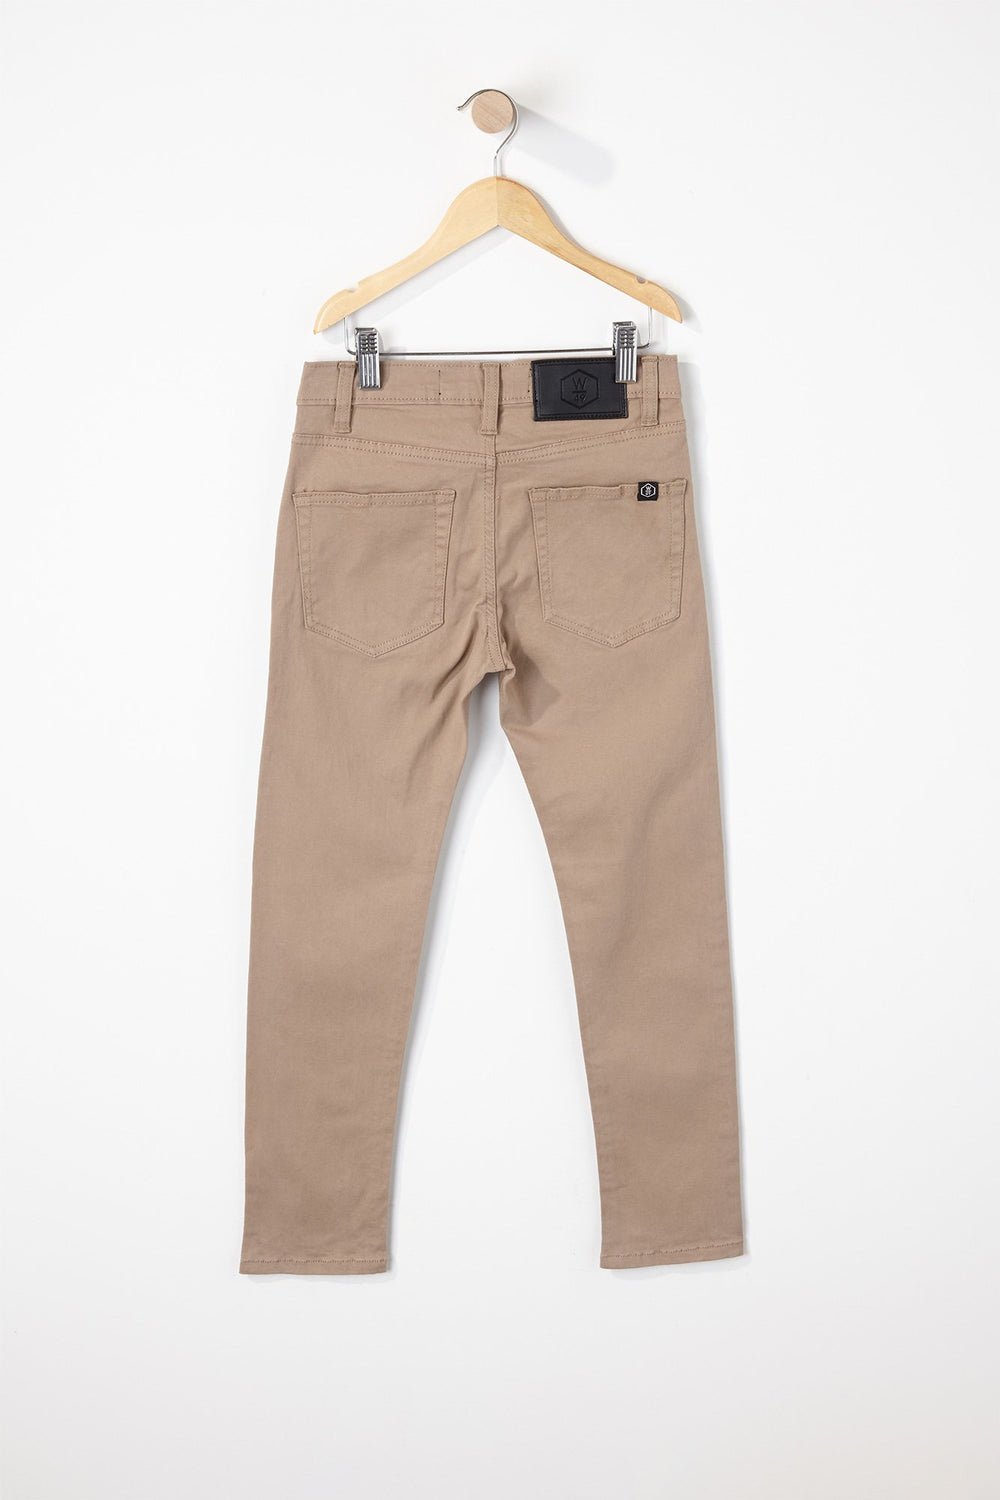 West49 Boys Solid Colour Skinny Pants Sand